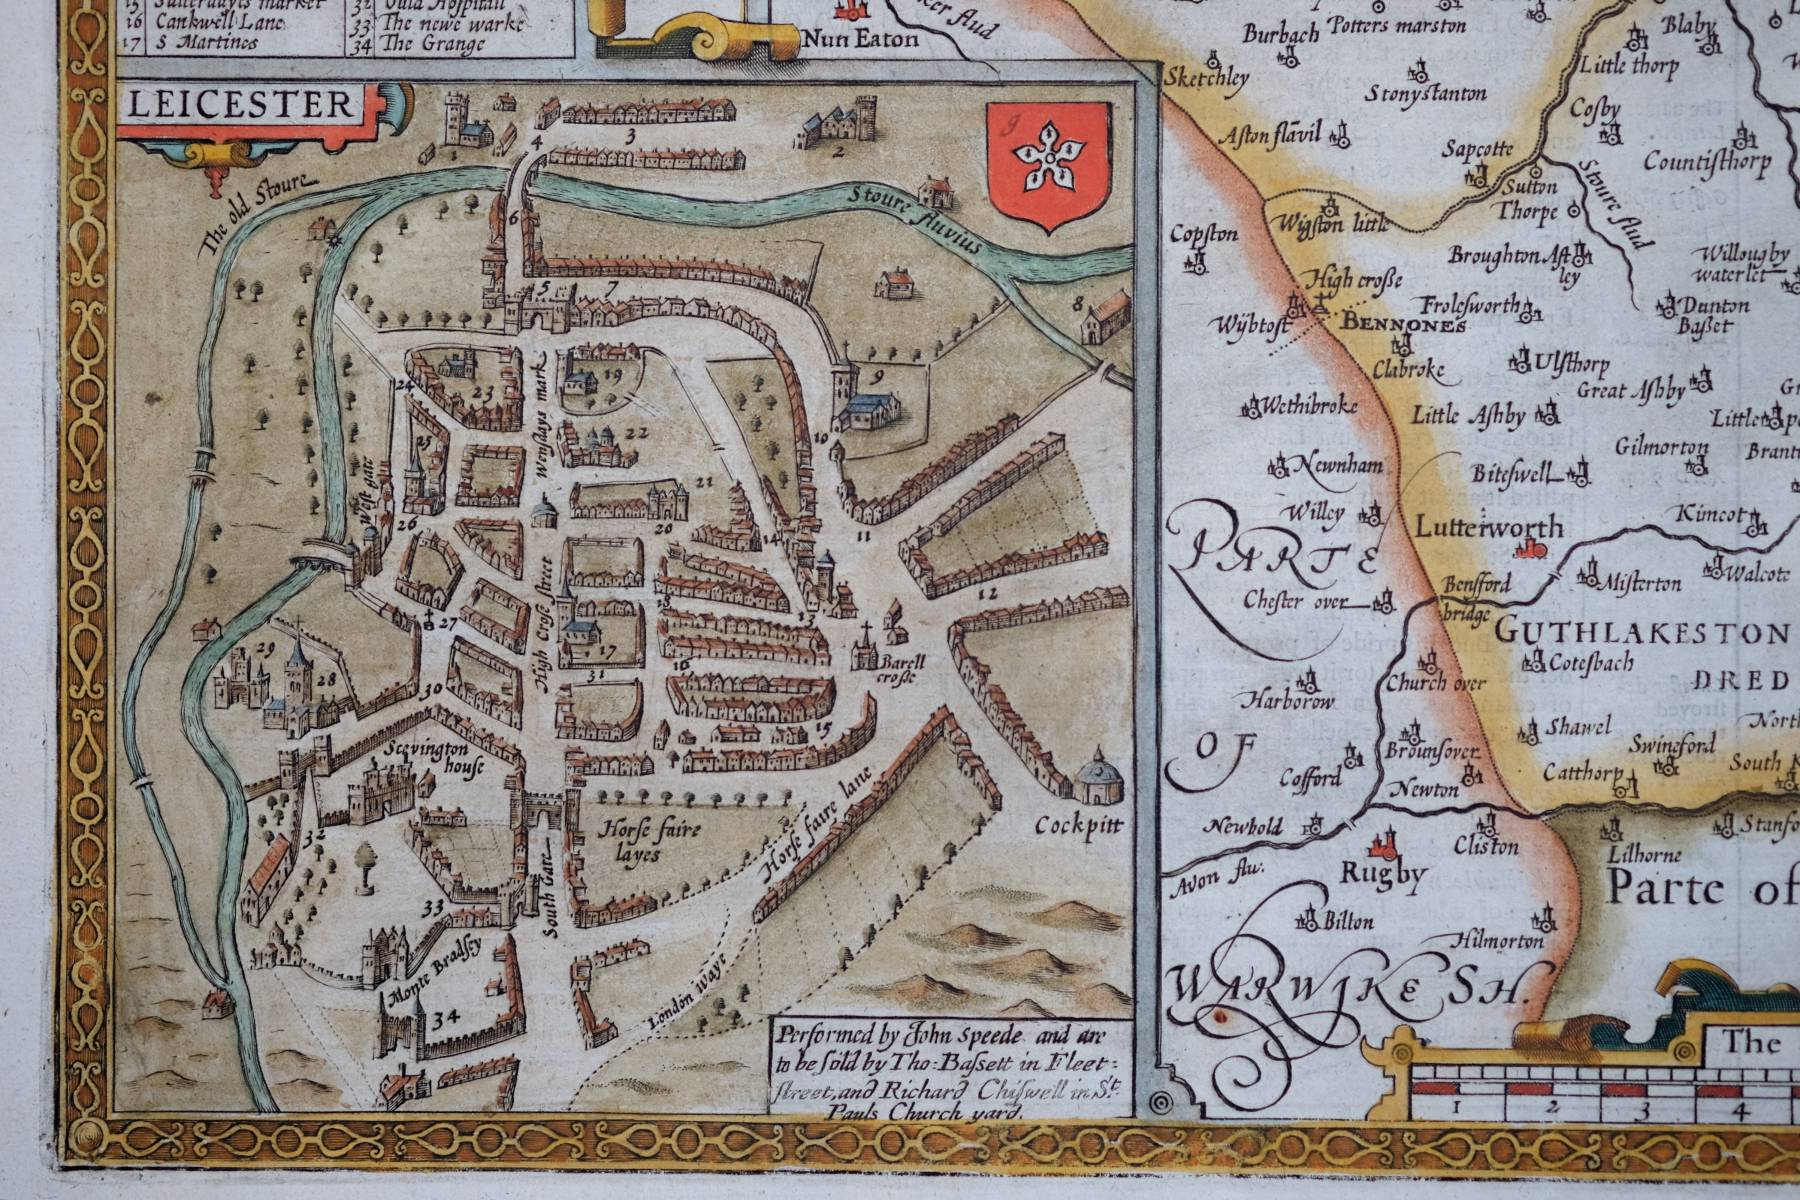 Leicestershire Uk Map.Leicestershire Antique Maps Old Maps Of Leicestershire Vintage